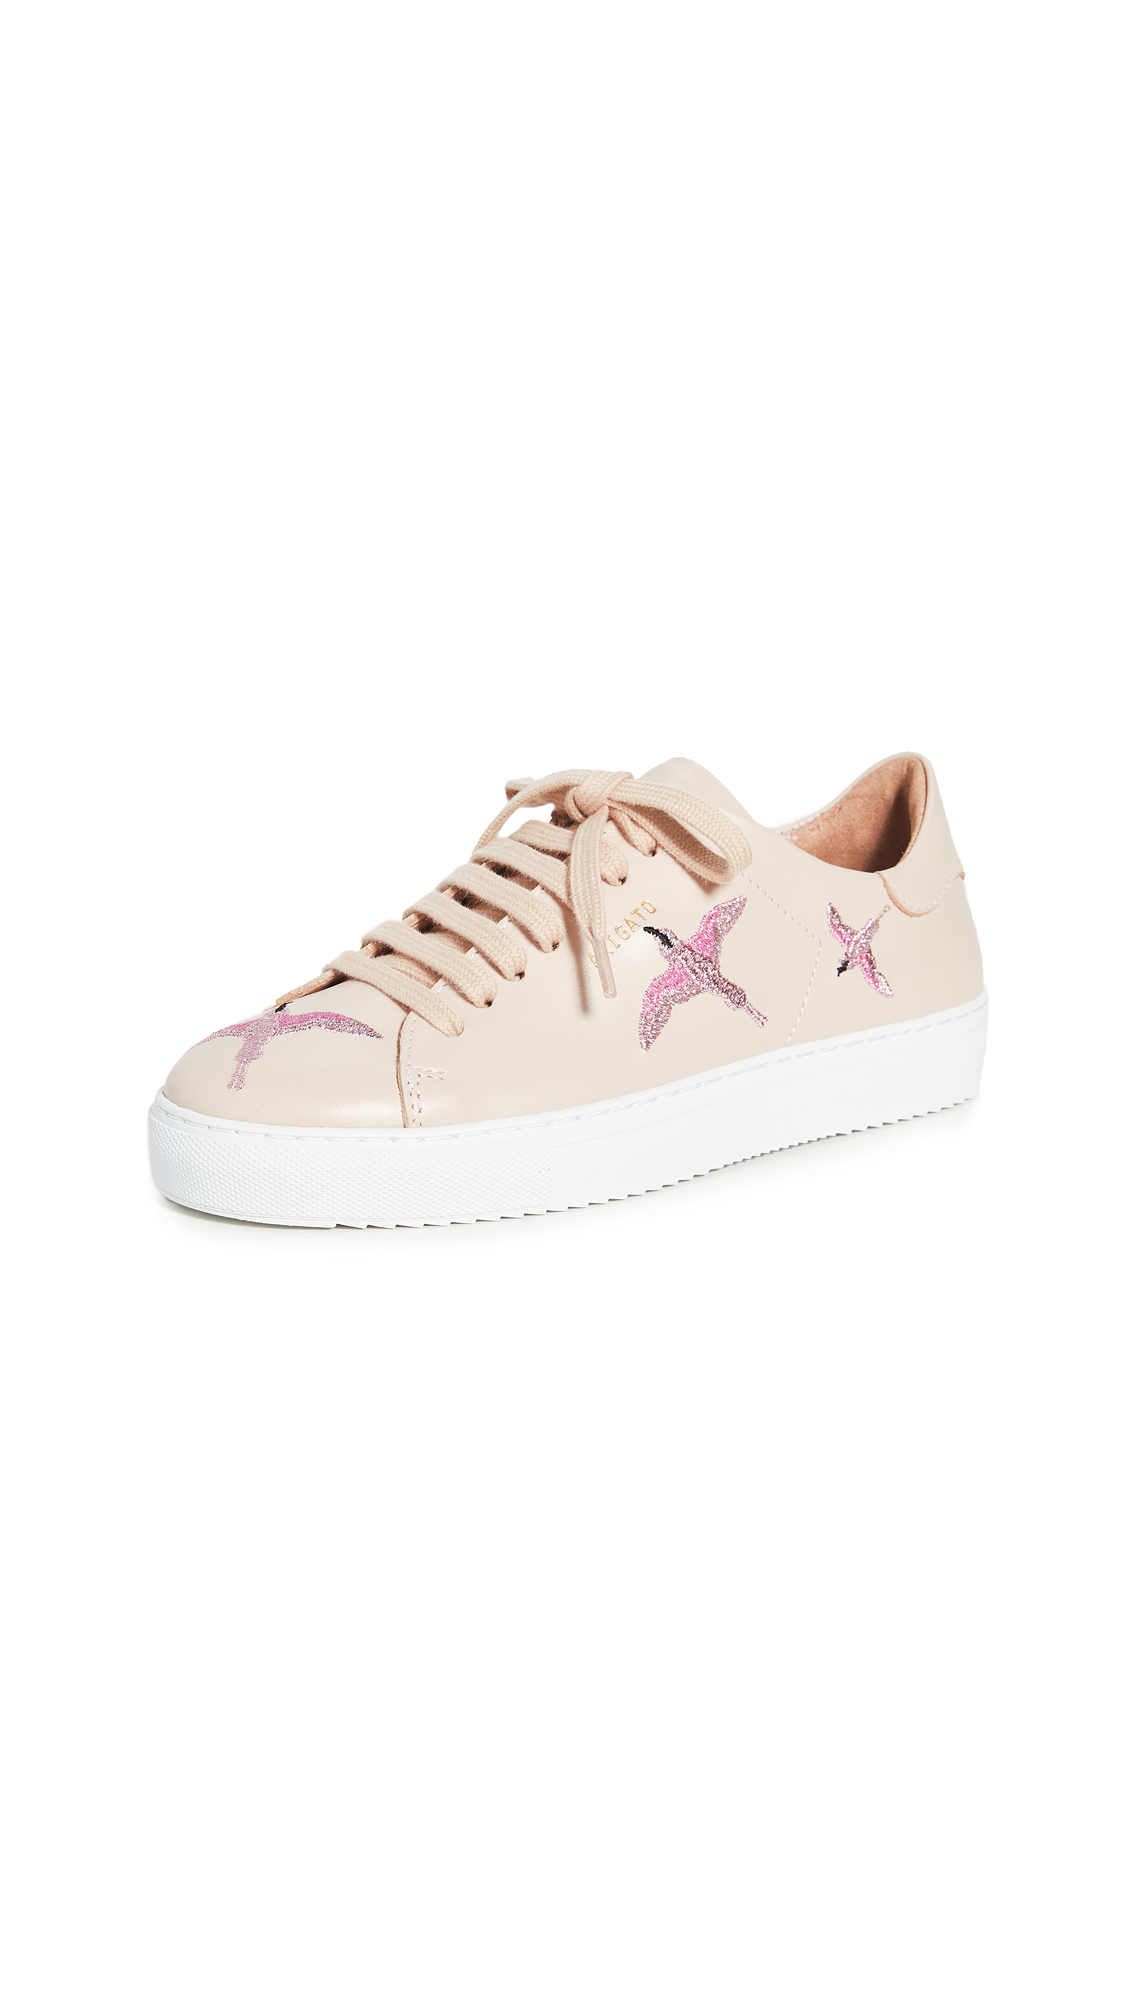 Axel Arigato Clean 90 Sneakers - Dusty Pink